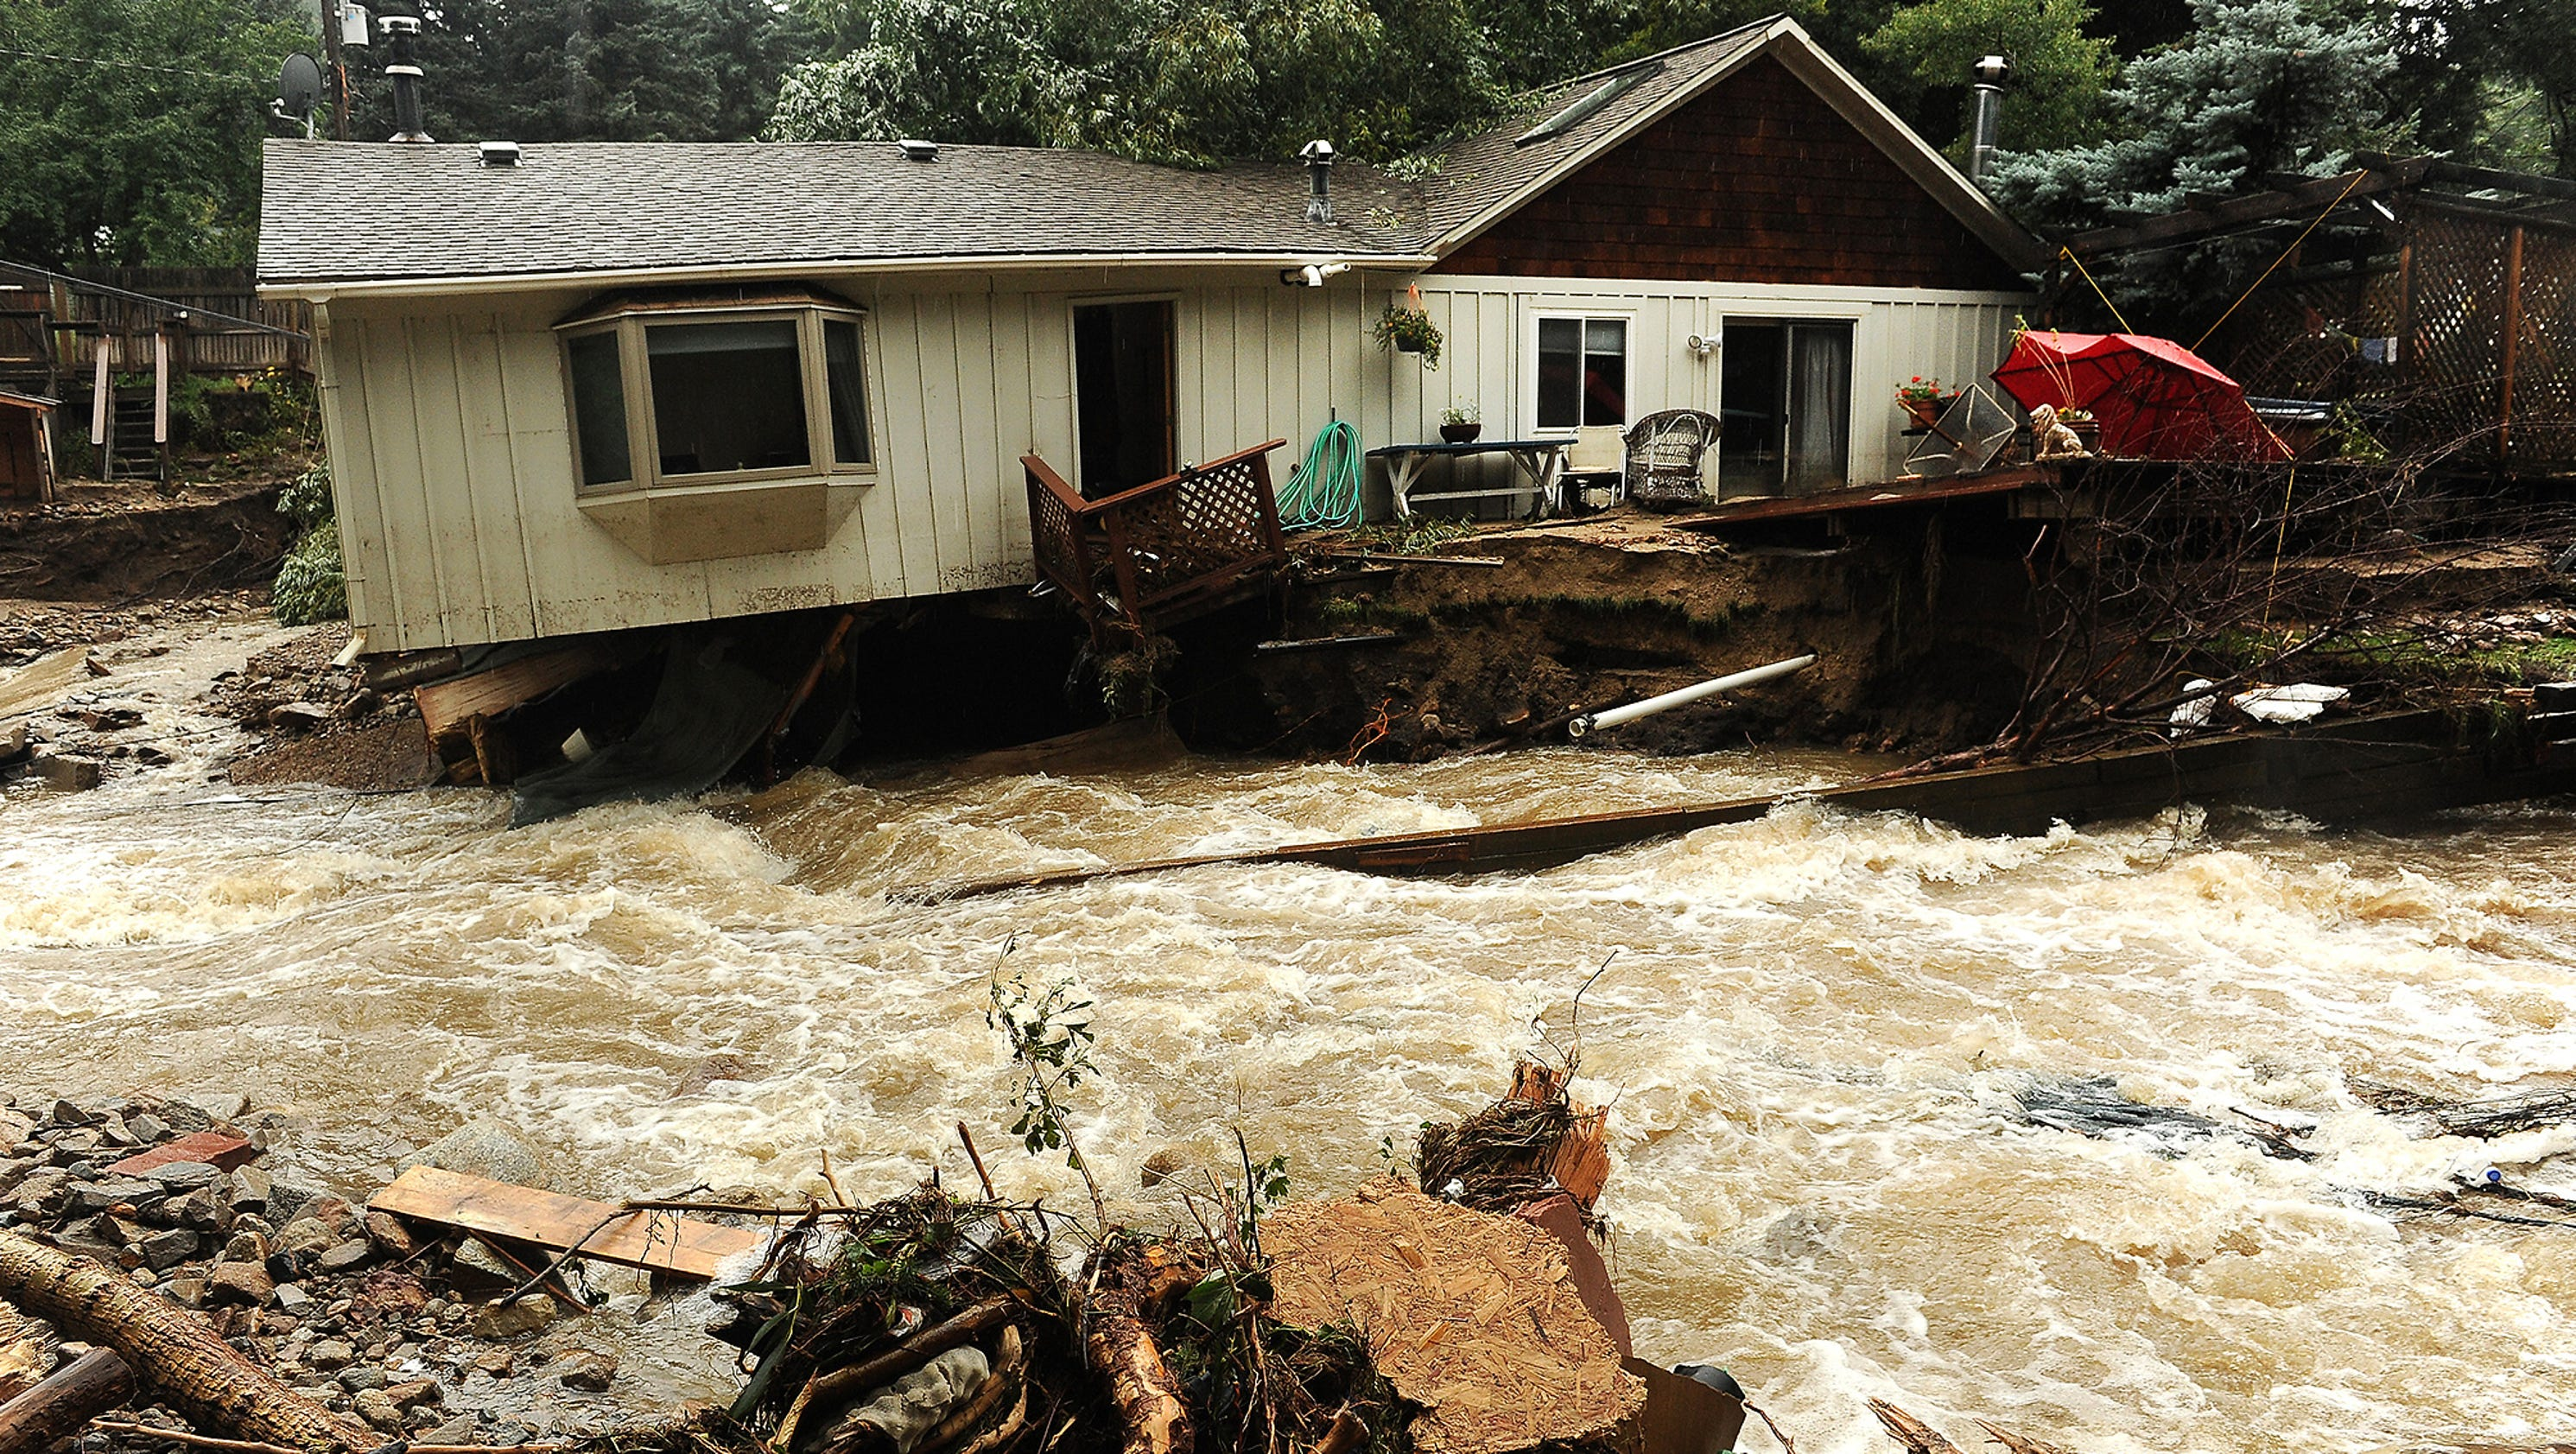 colorado flood 2013 with 2823189 on Interactive Map Shows Impact Of Colorado Flooding in addition 09 as well Rugby Star Nick Youngquest Talks To Afterelton About His Straight Gay Alliance With Gareth Thomas 32083 further Building A  work Of Buyers And Tools To Market Them furthermore Rocky Update.